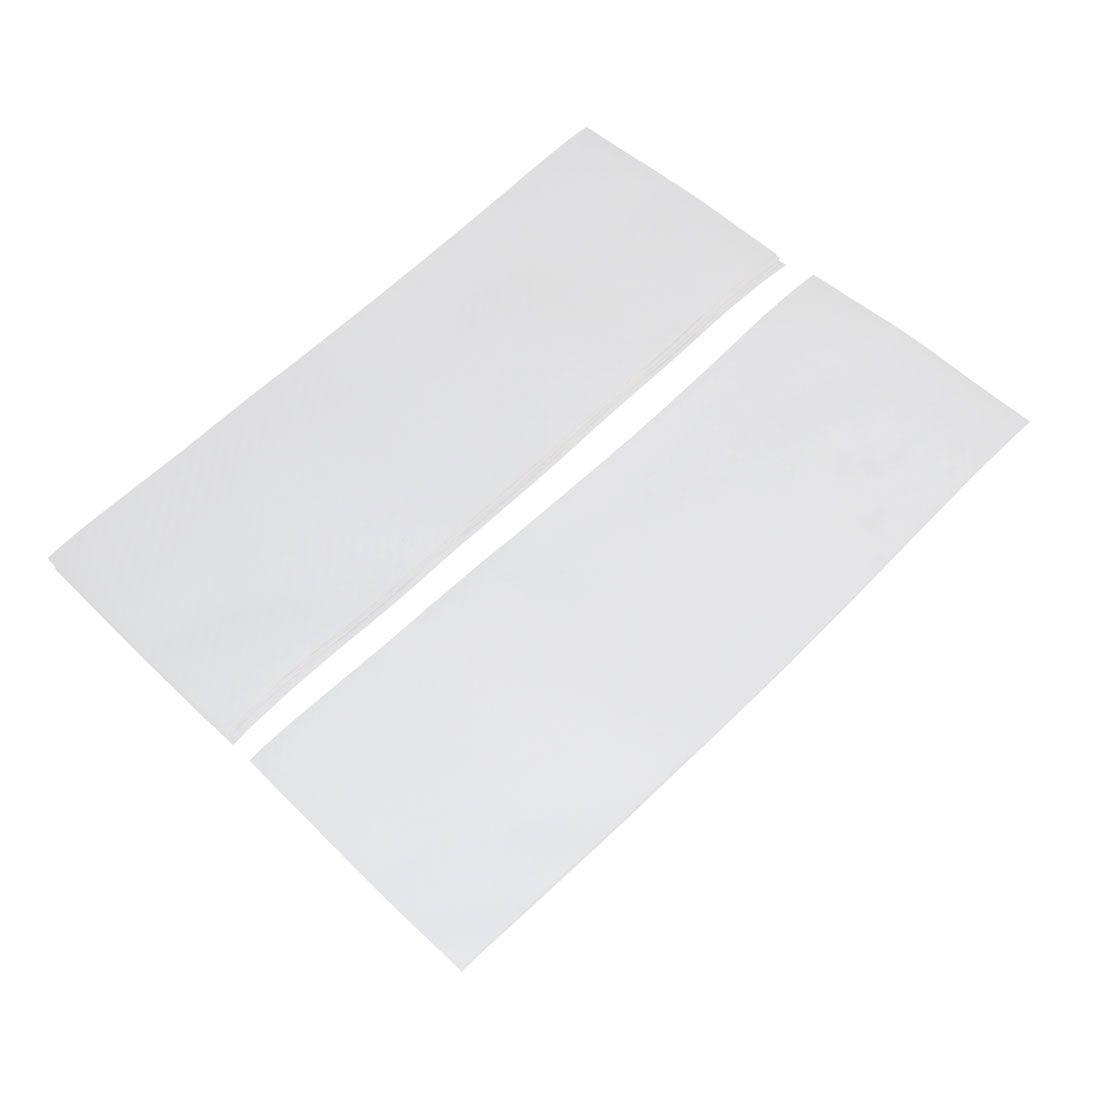 5pcs 300 x 106mm Self Adhesive Carbon Fiber Protective Film Sticker White for Car